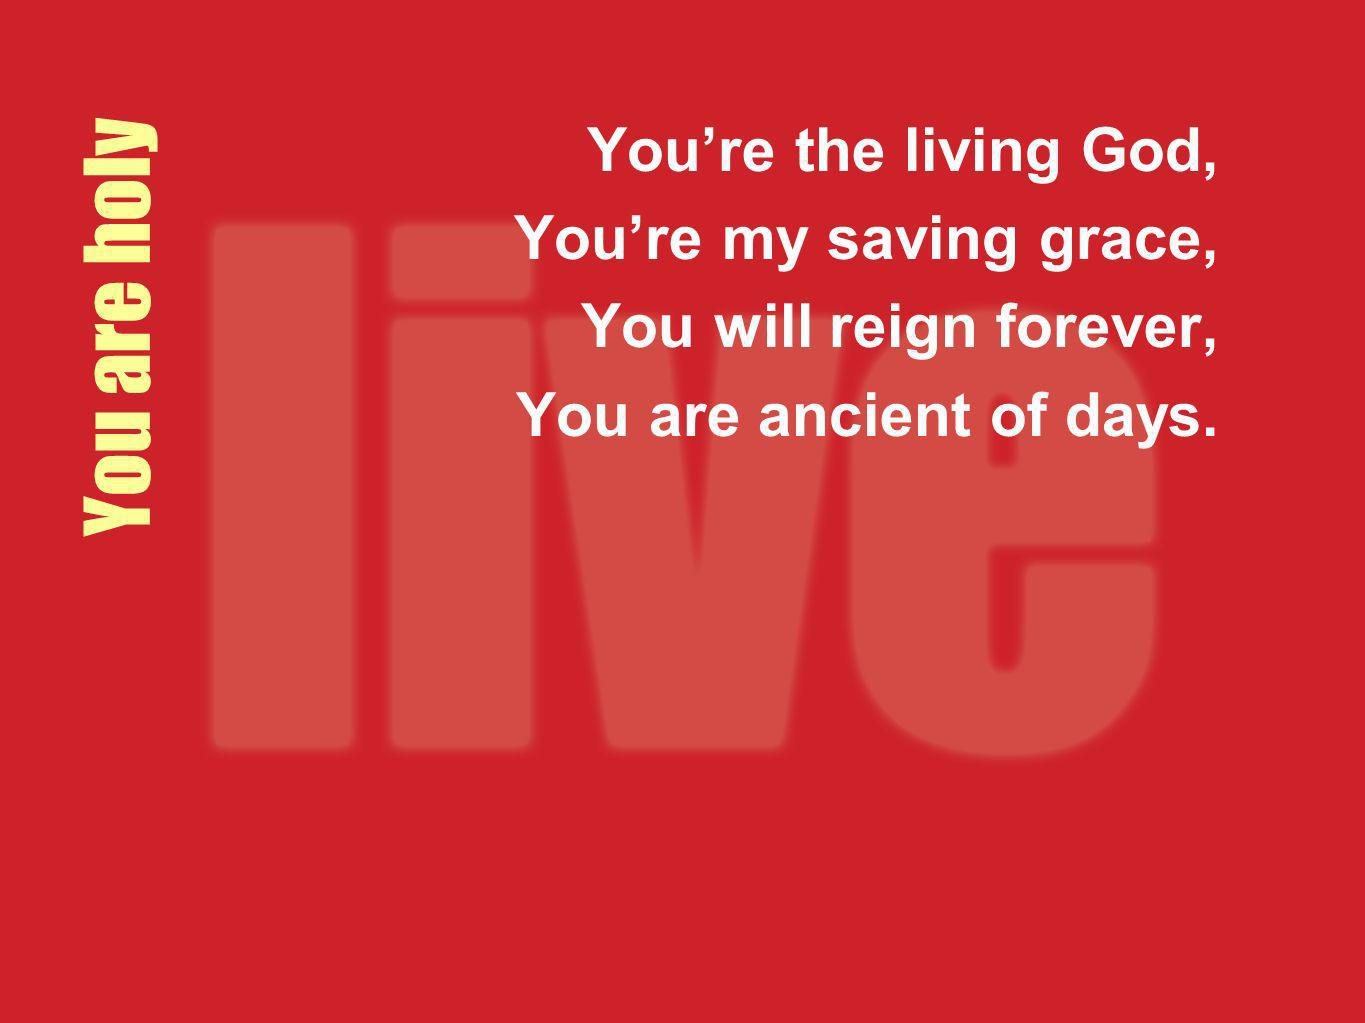 You are holy You're the living God, You're my saving grace,